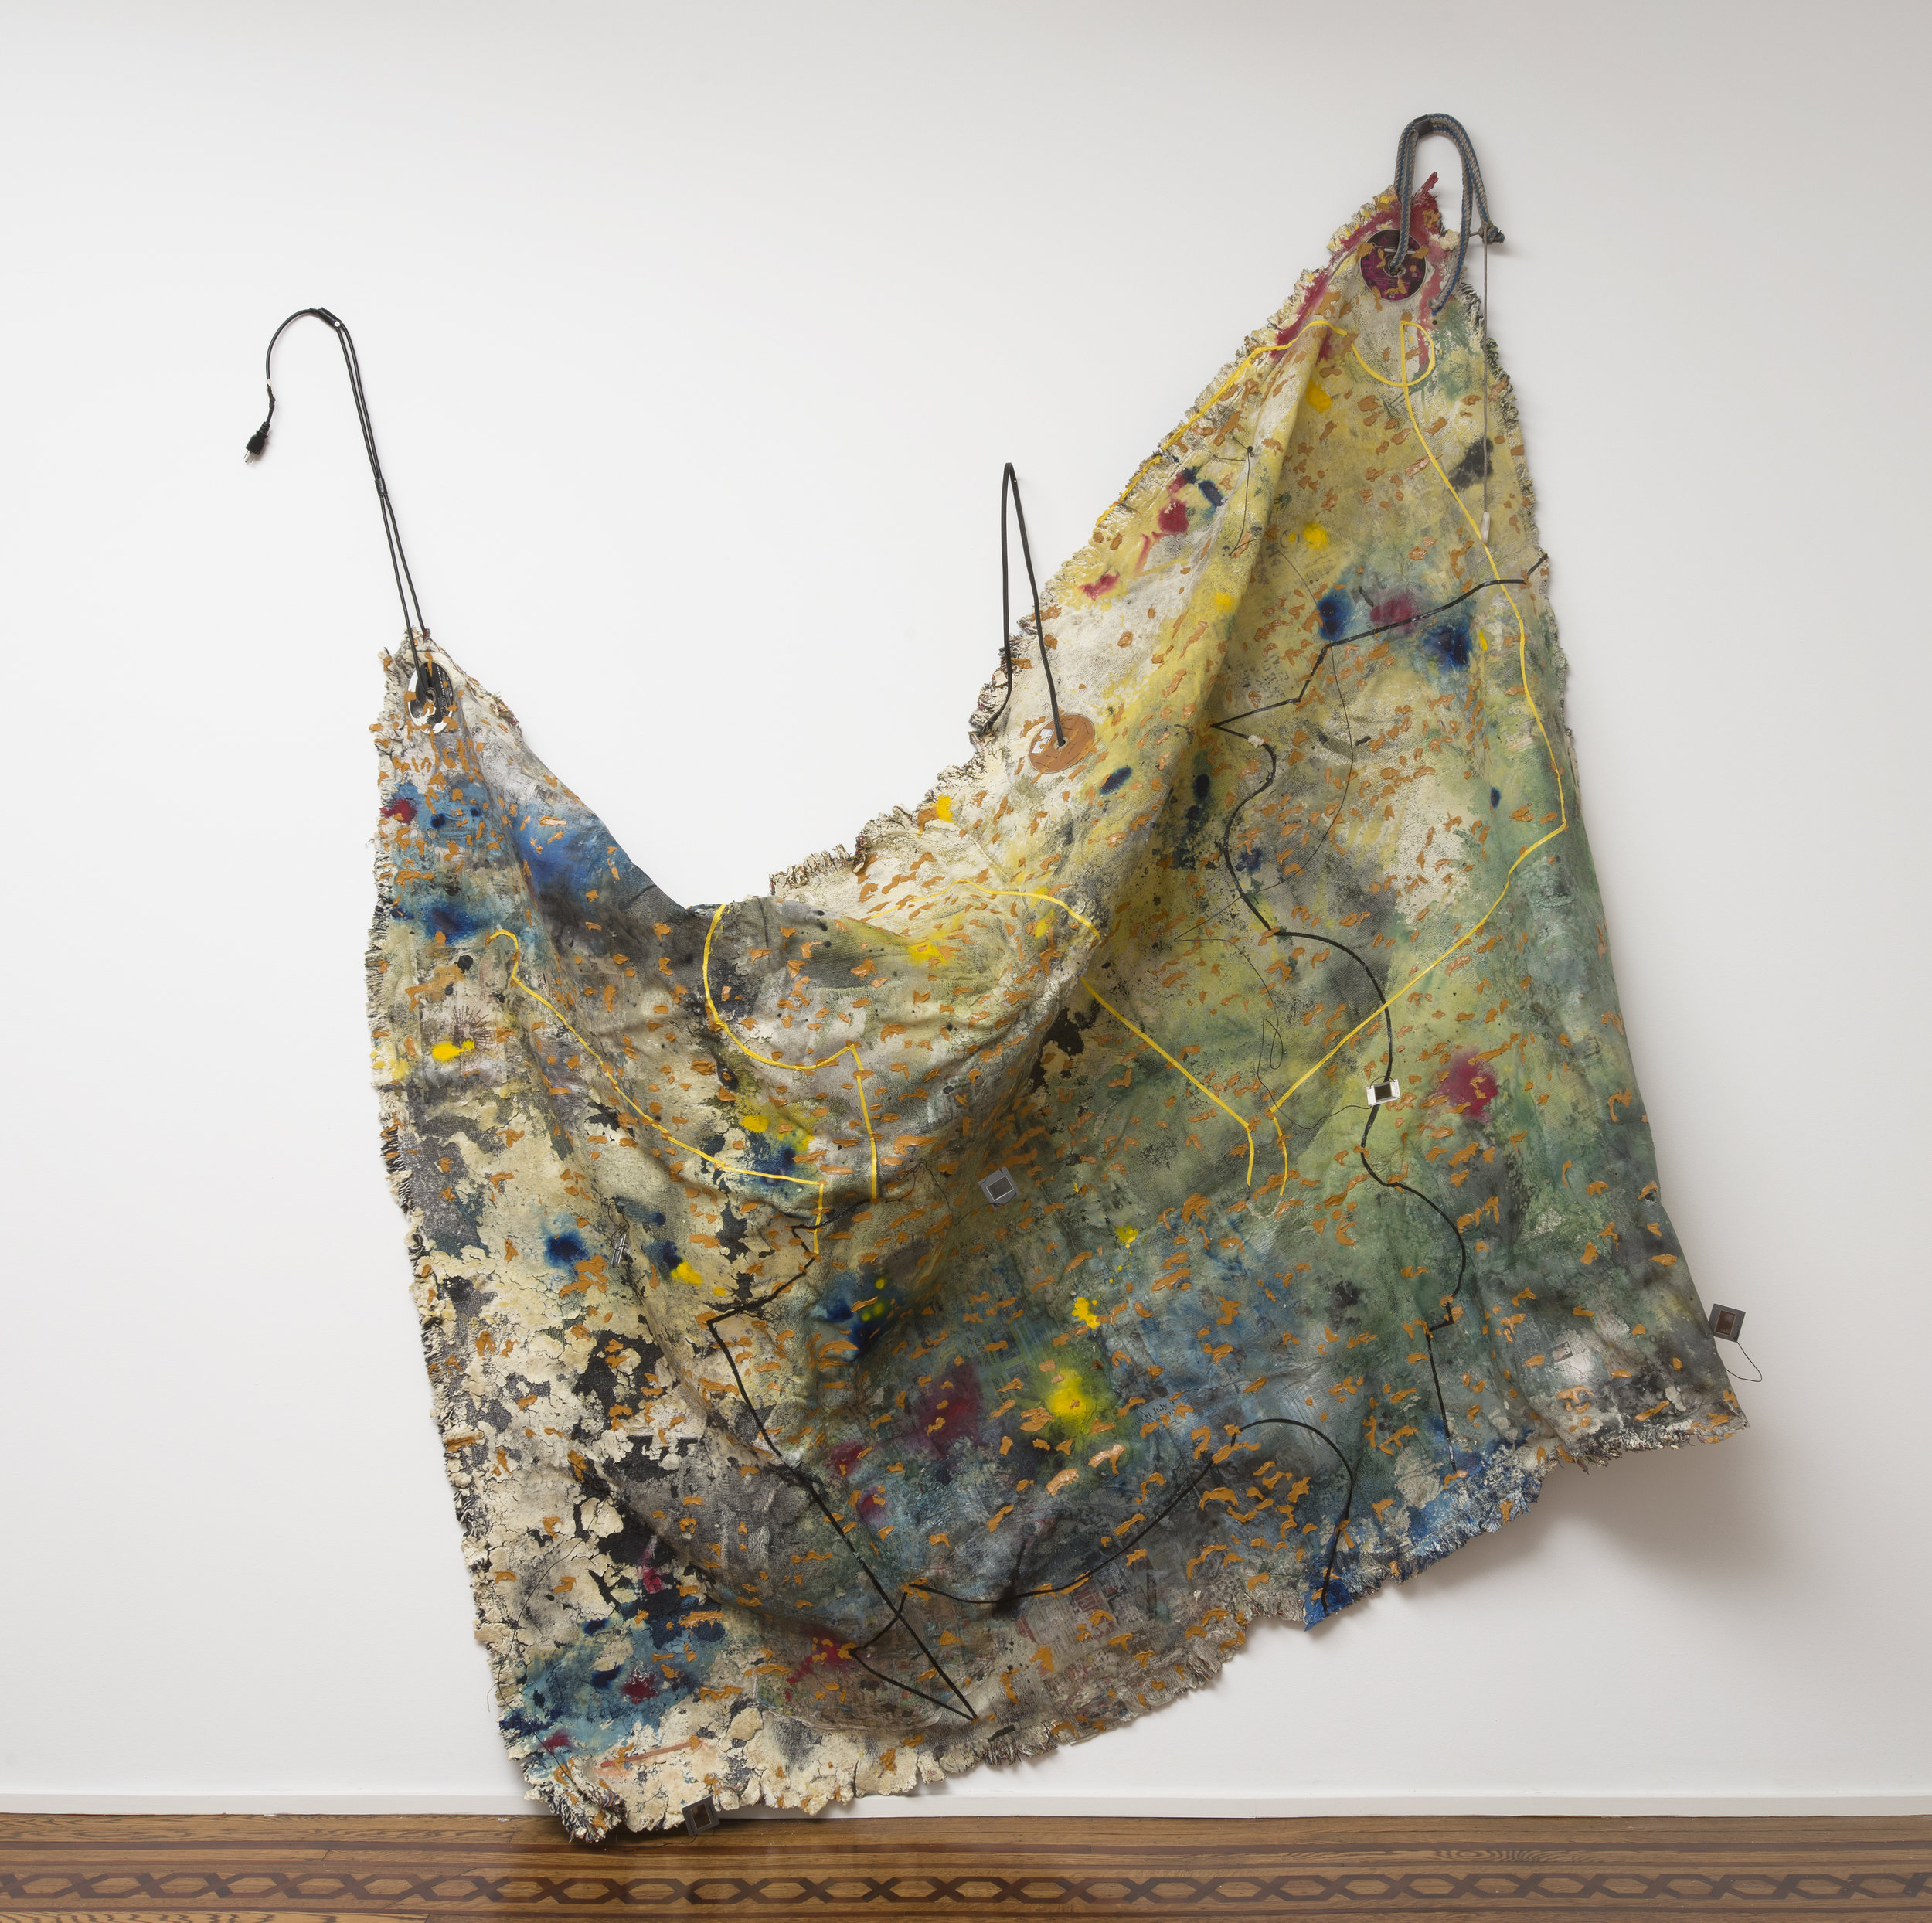 """Stoppages 3 Etalon , 2013, Custom woven tapestry, polyurethane foam, acrylic, dye, glass slides, wire, cards, magazine clipping, AstroTurf and carpet foam, overall installed dimension variable, 60"""" x 83"""""""